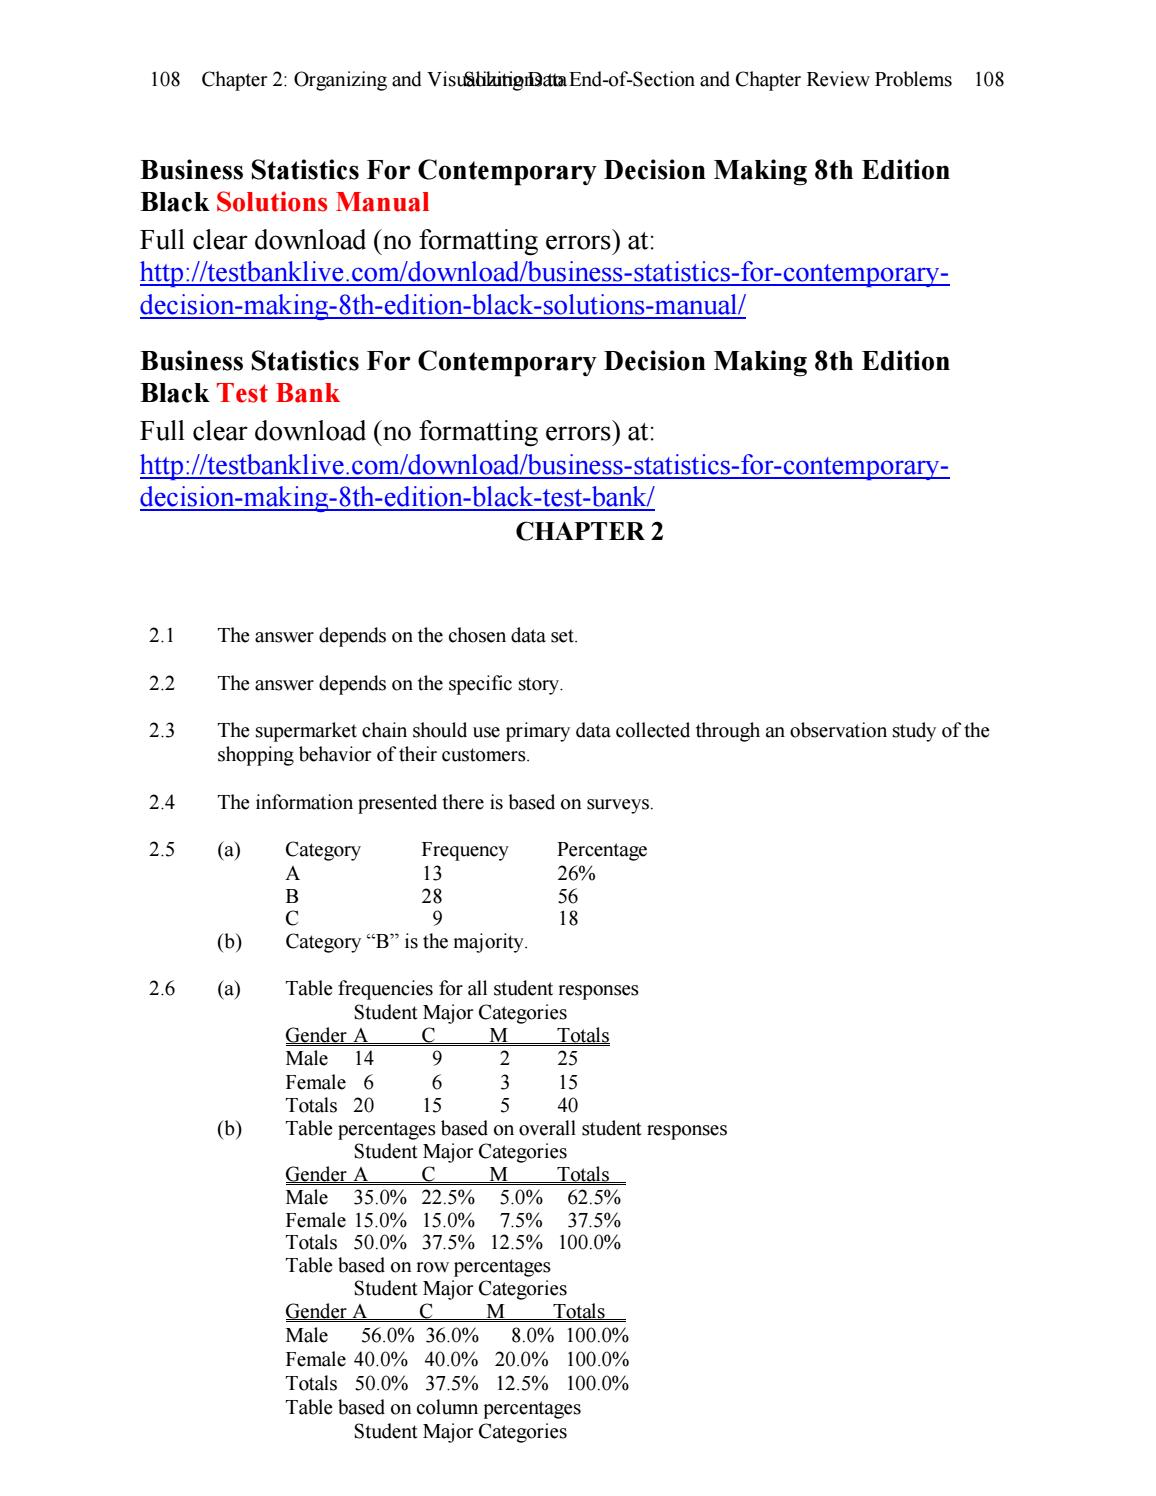 Business statistics for contemporary decision making 8th edition black solutions  manual by Dzzz - issuu